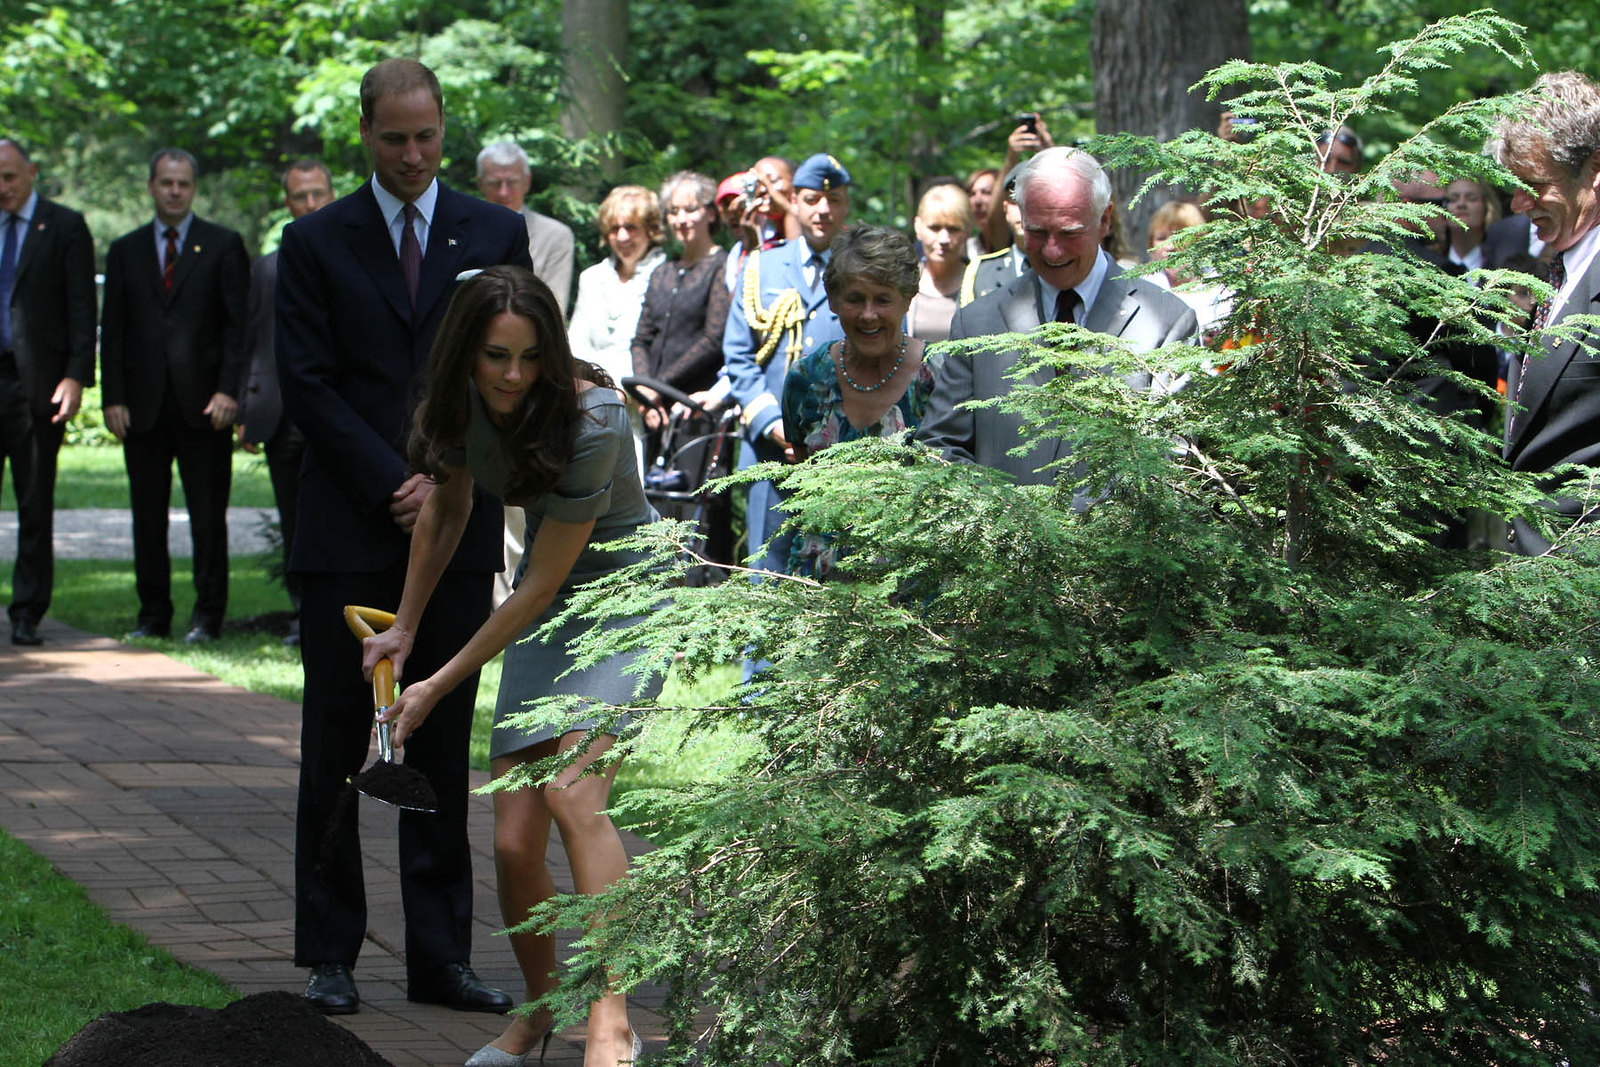 The Duke and Duchess of Cambridge planted a tree at Rideau hall